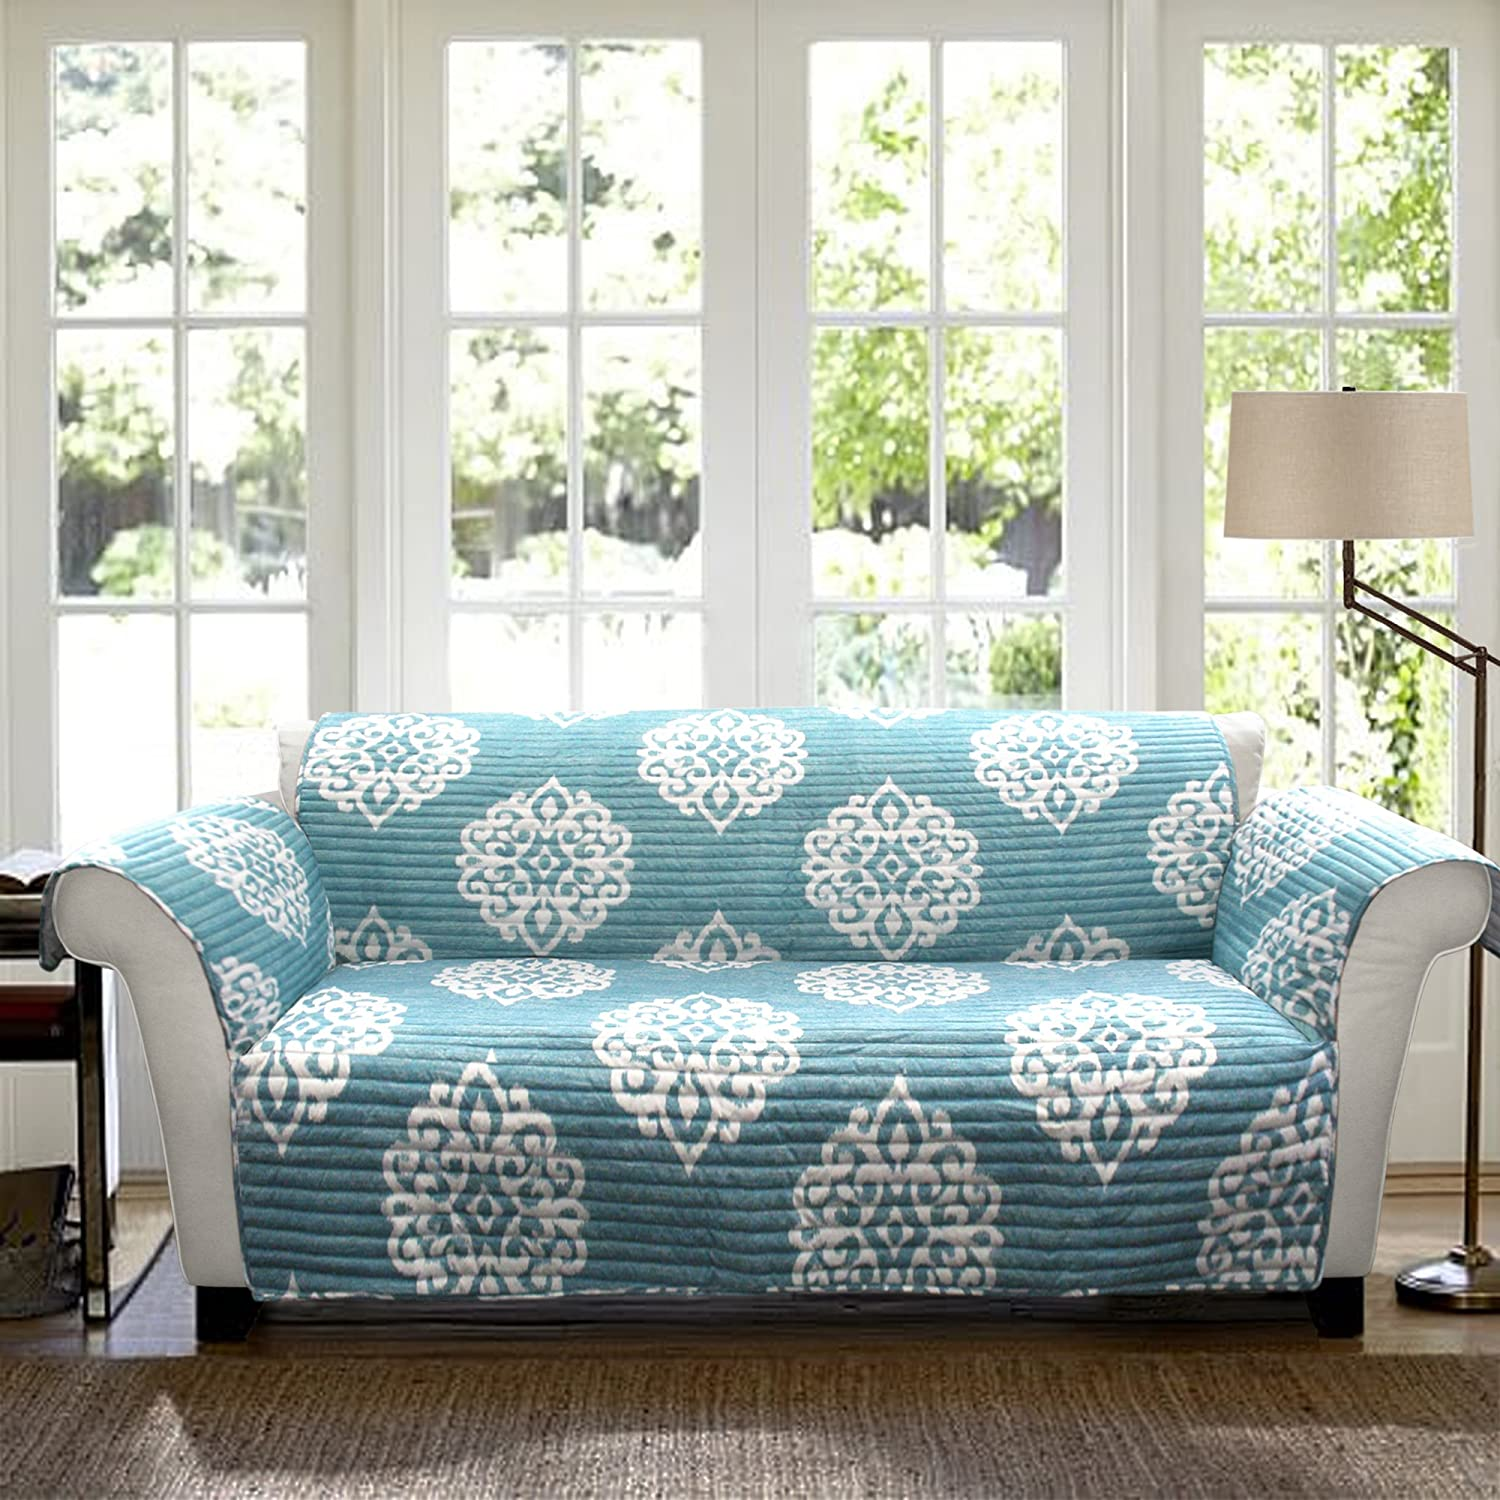 Amazon Lush Decor Sohpie Slipcover Furniture Protector for